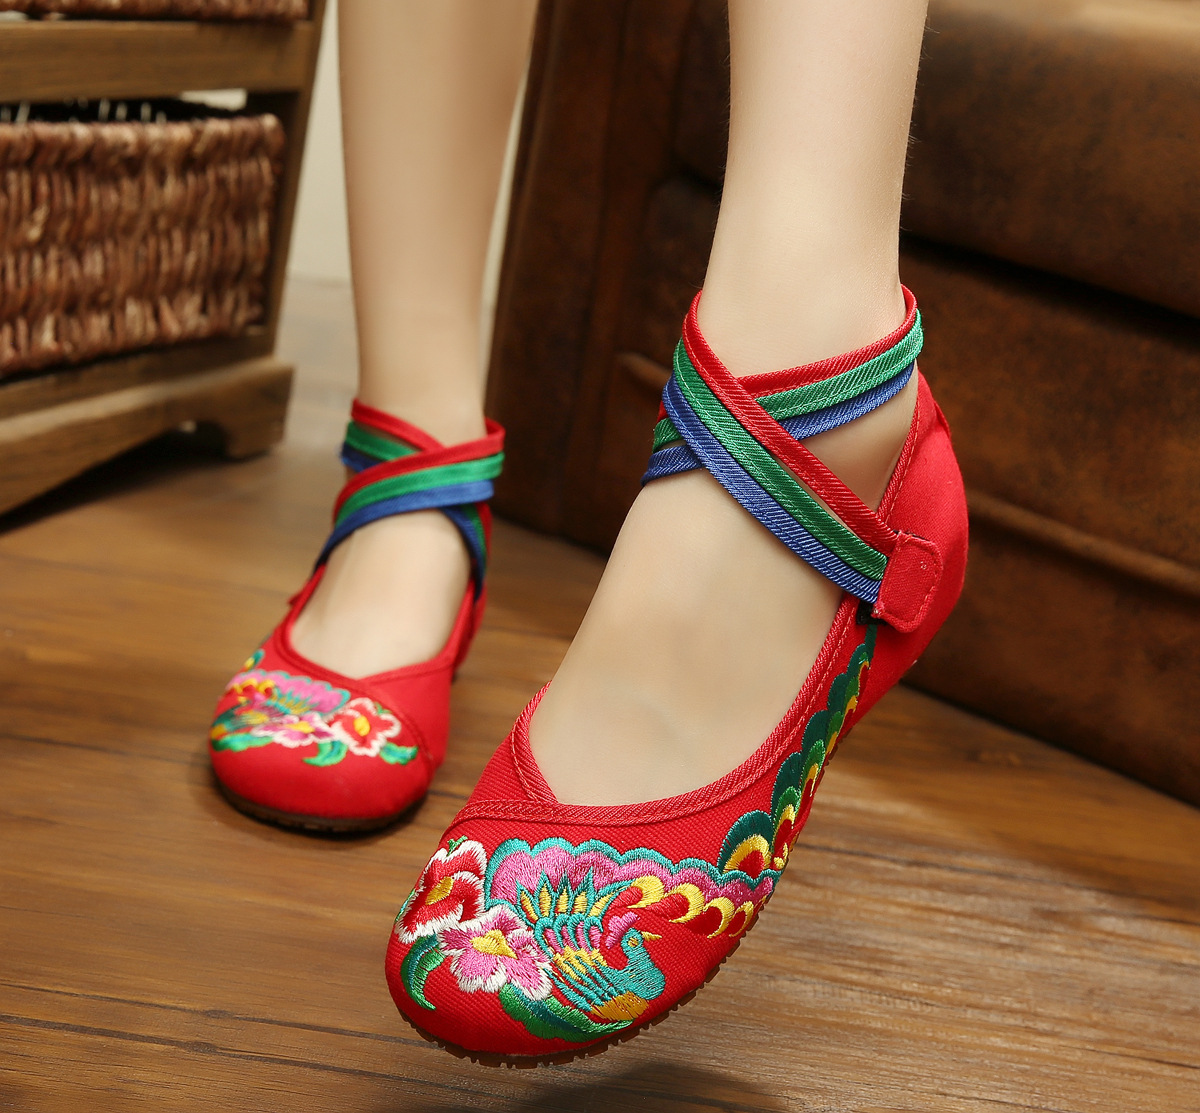 2016 New Fashion Women Shoes Chinese Style Mary Jane Flats Embroidery Casual Cloth Shoes Red Black Blue Black SMYXHX-A0004<br><br>Aliexpress